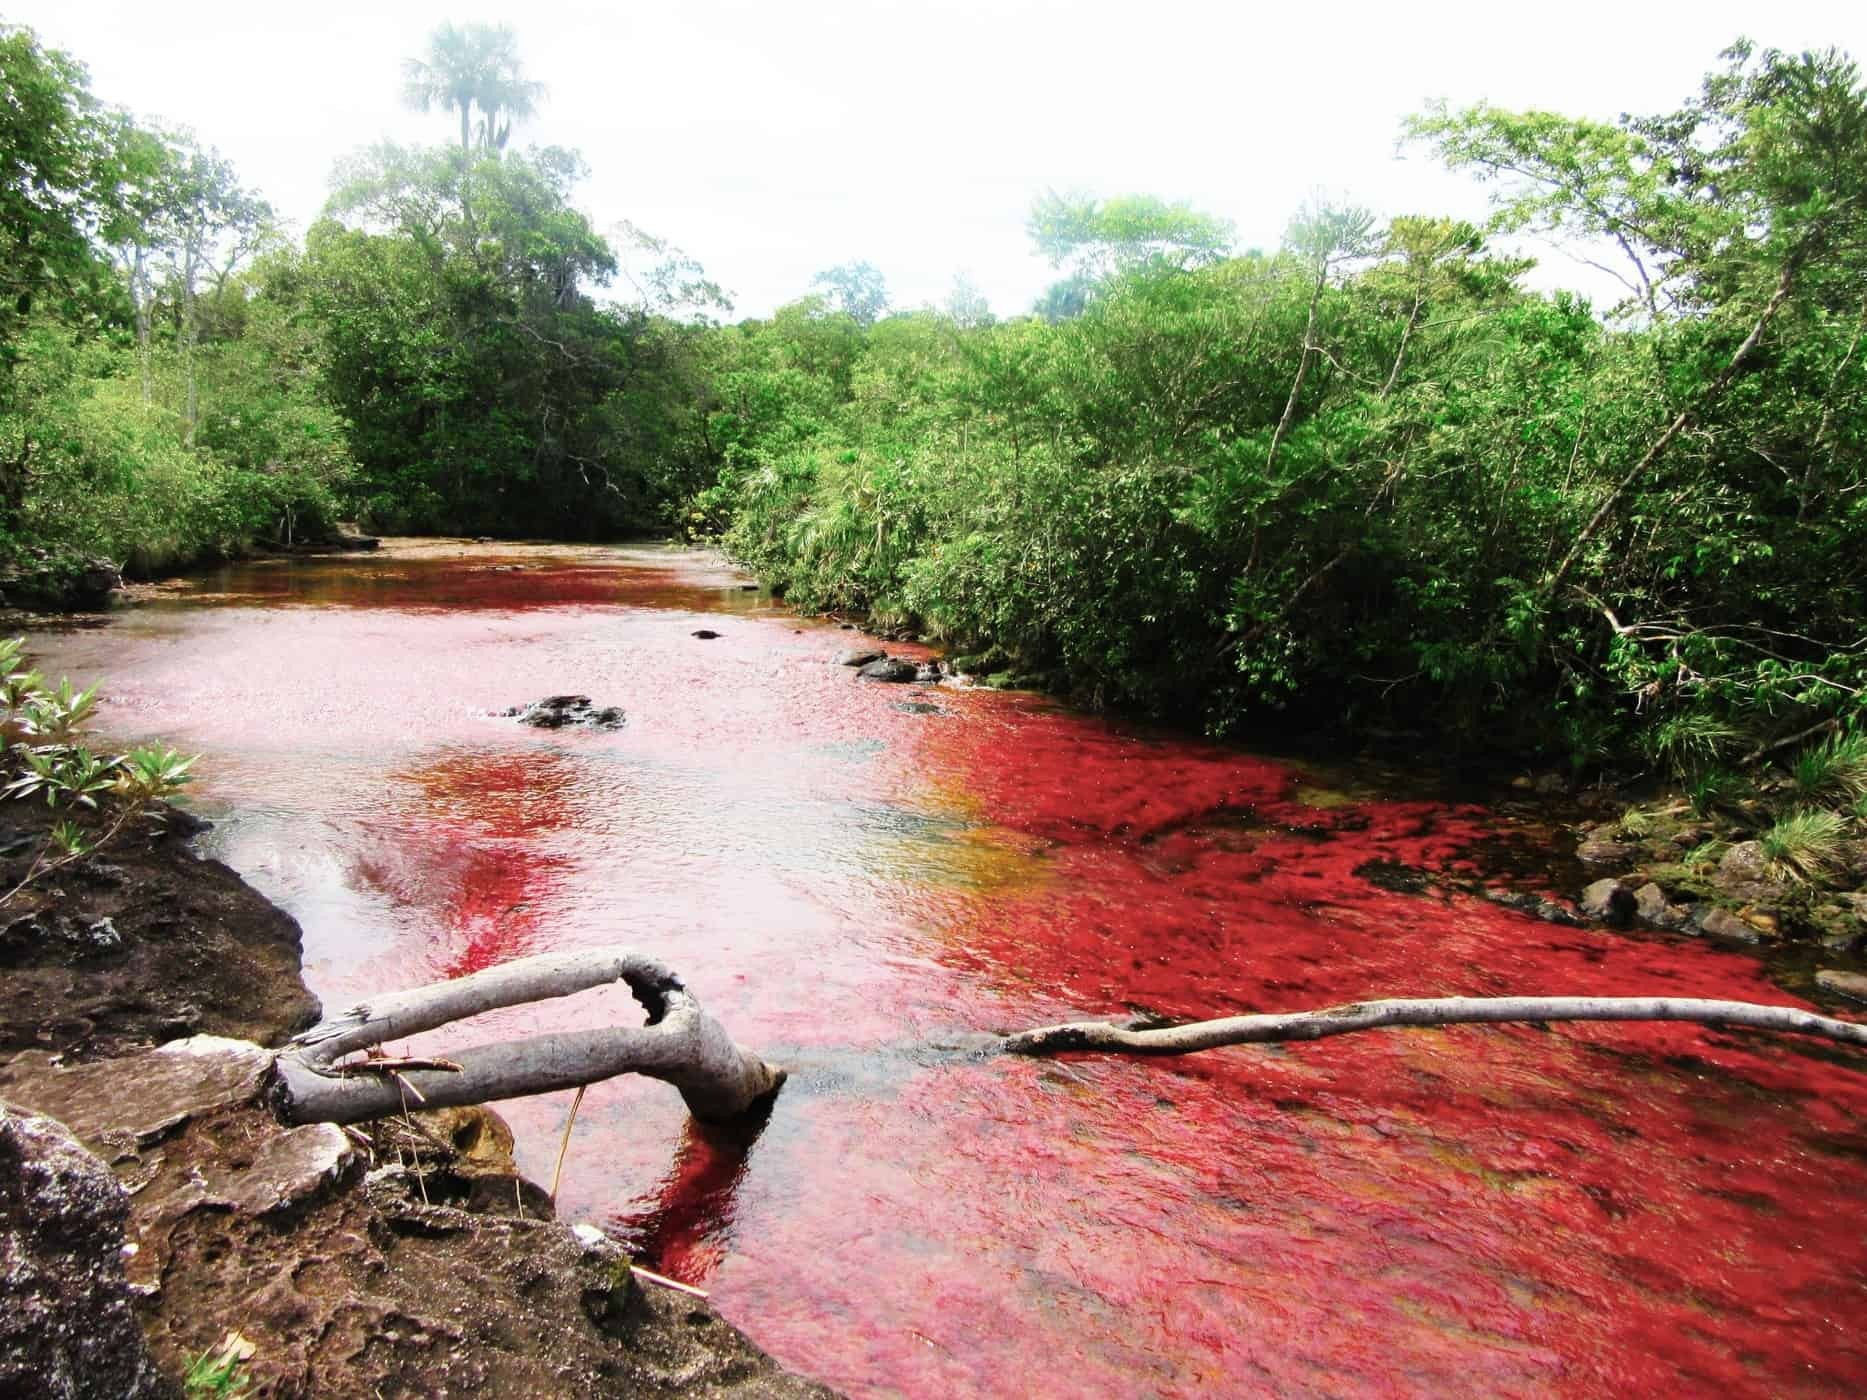 The rainy season is the best time to see Caño Cristales in all its glory.